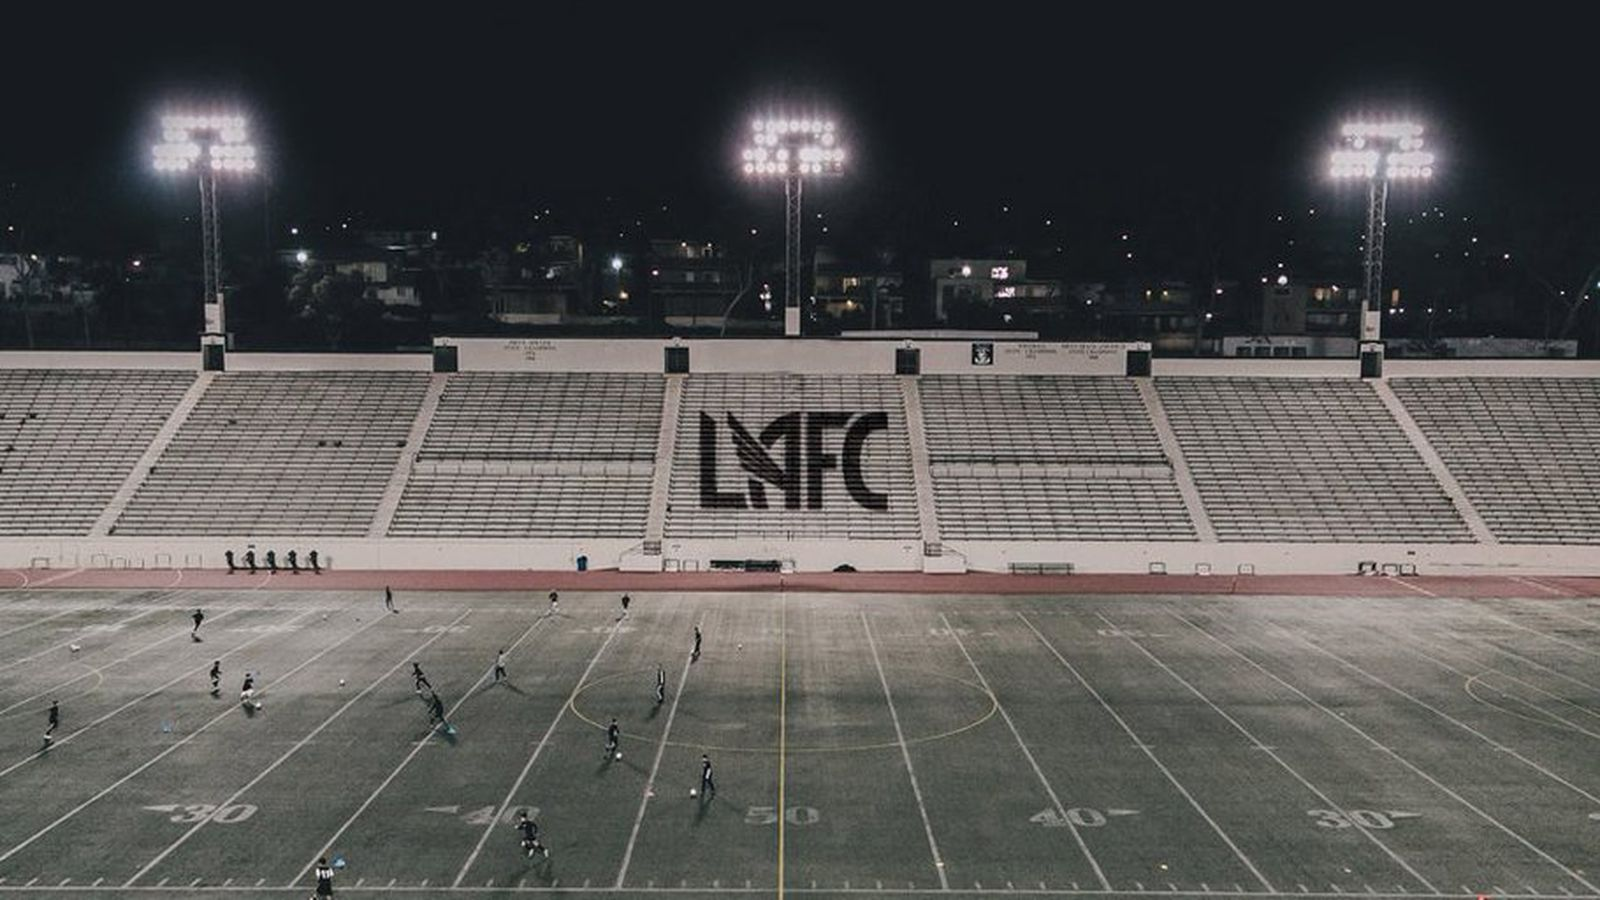 Lafcacademy.0.0